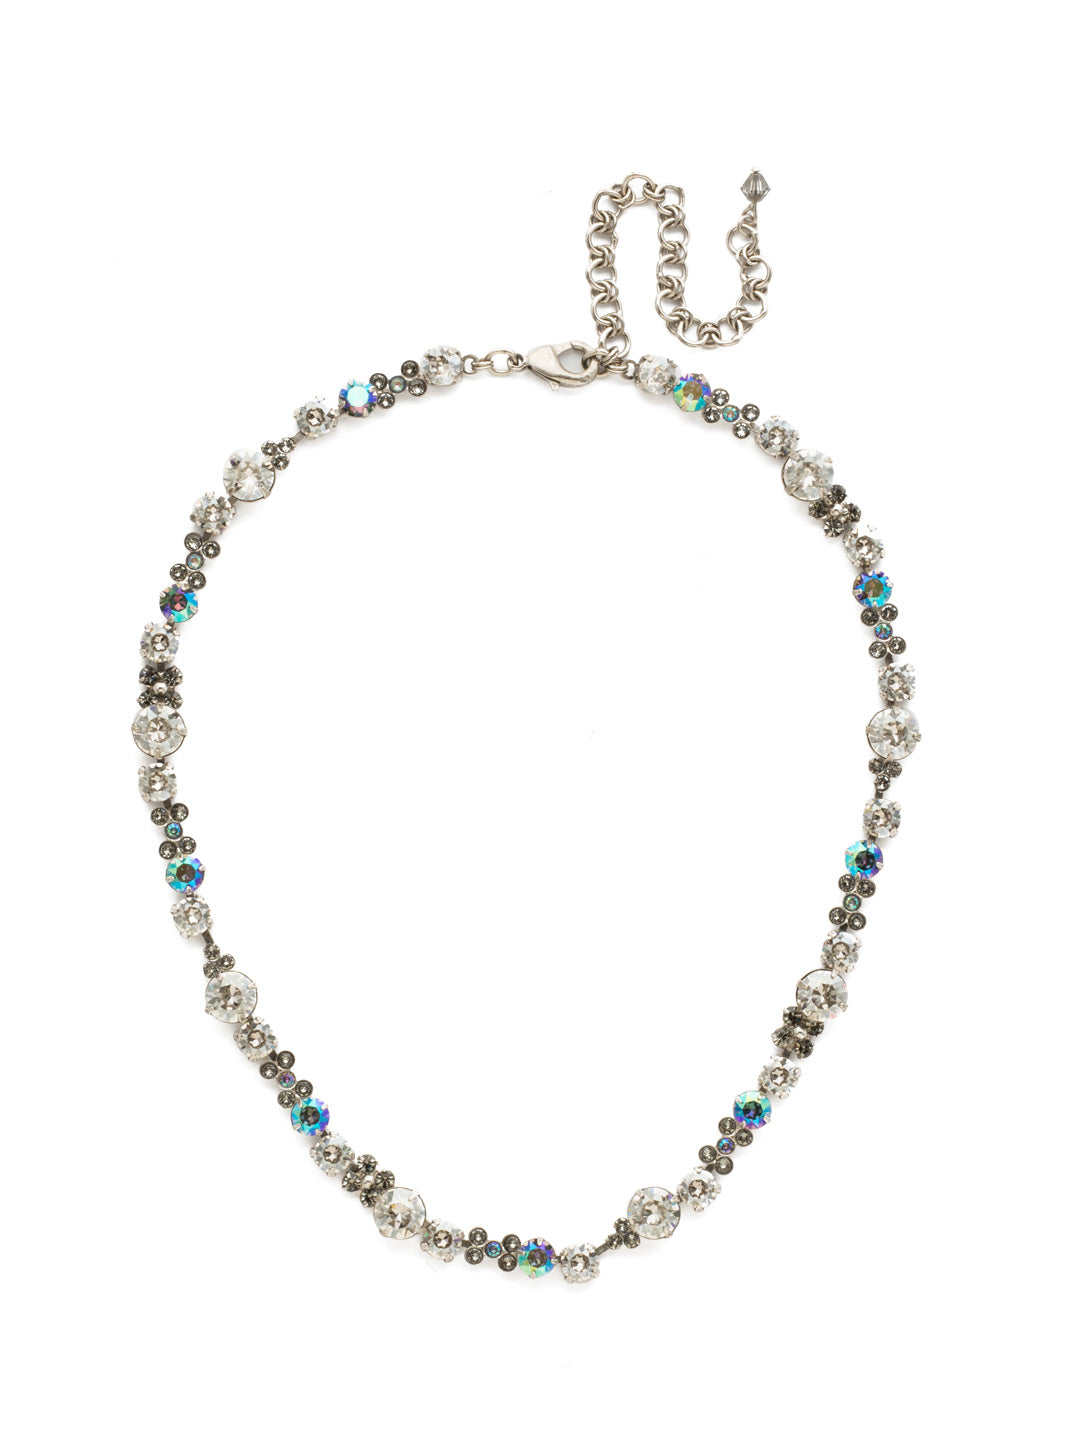 In Bloom Line Necklace - NDK10ASCRO